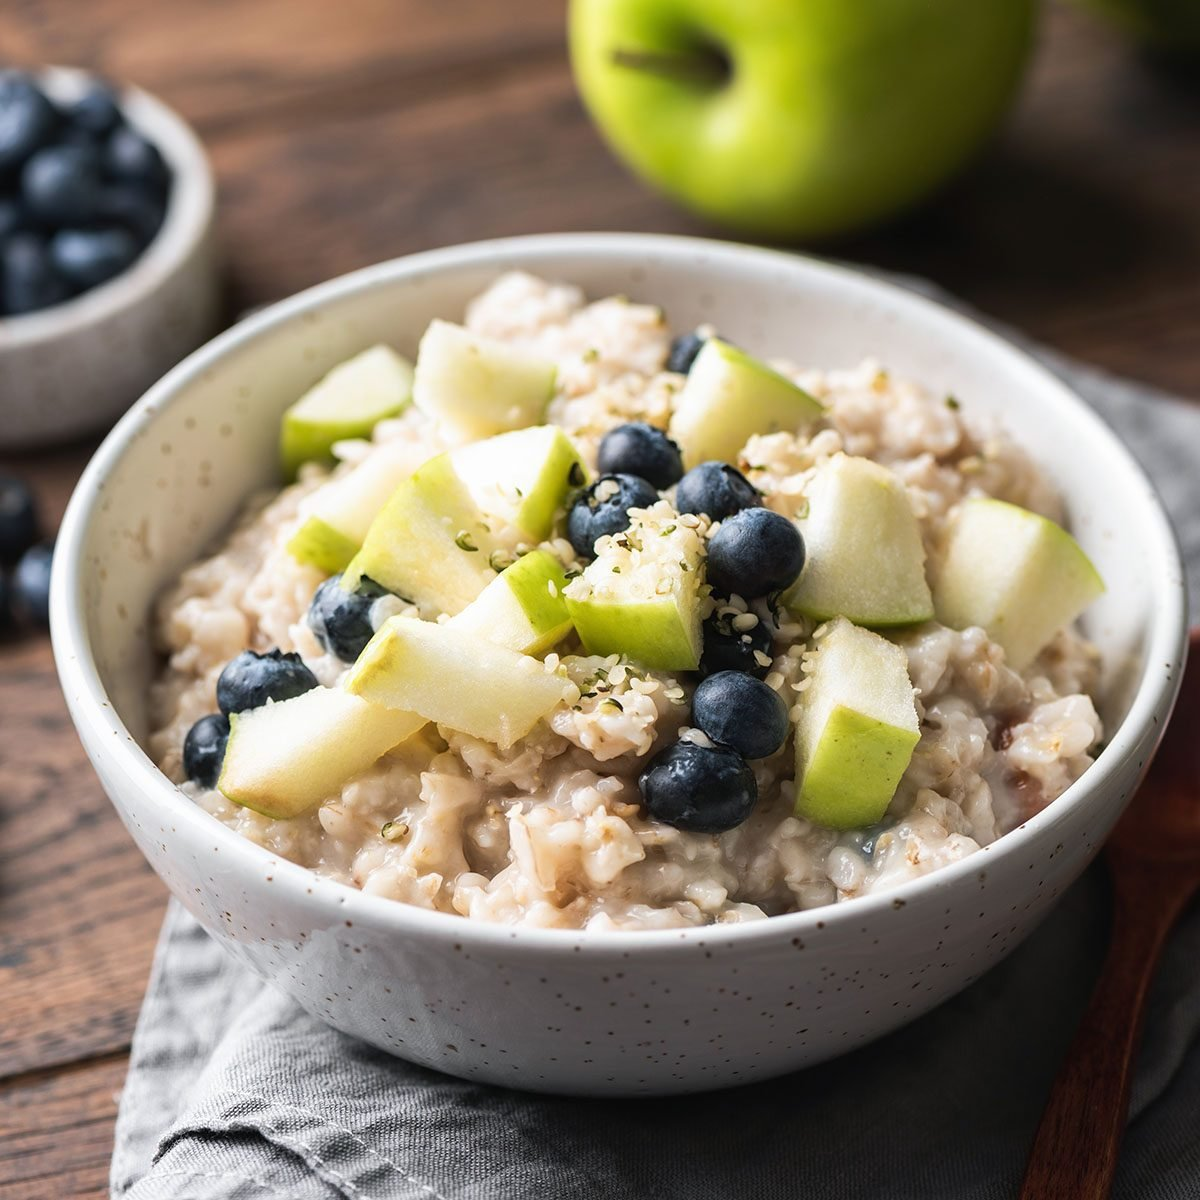 Oatmeal porridge with green apple, hemp seeds and blueberries